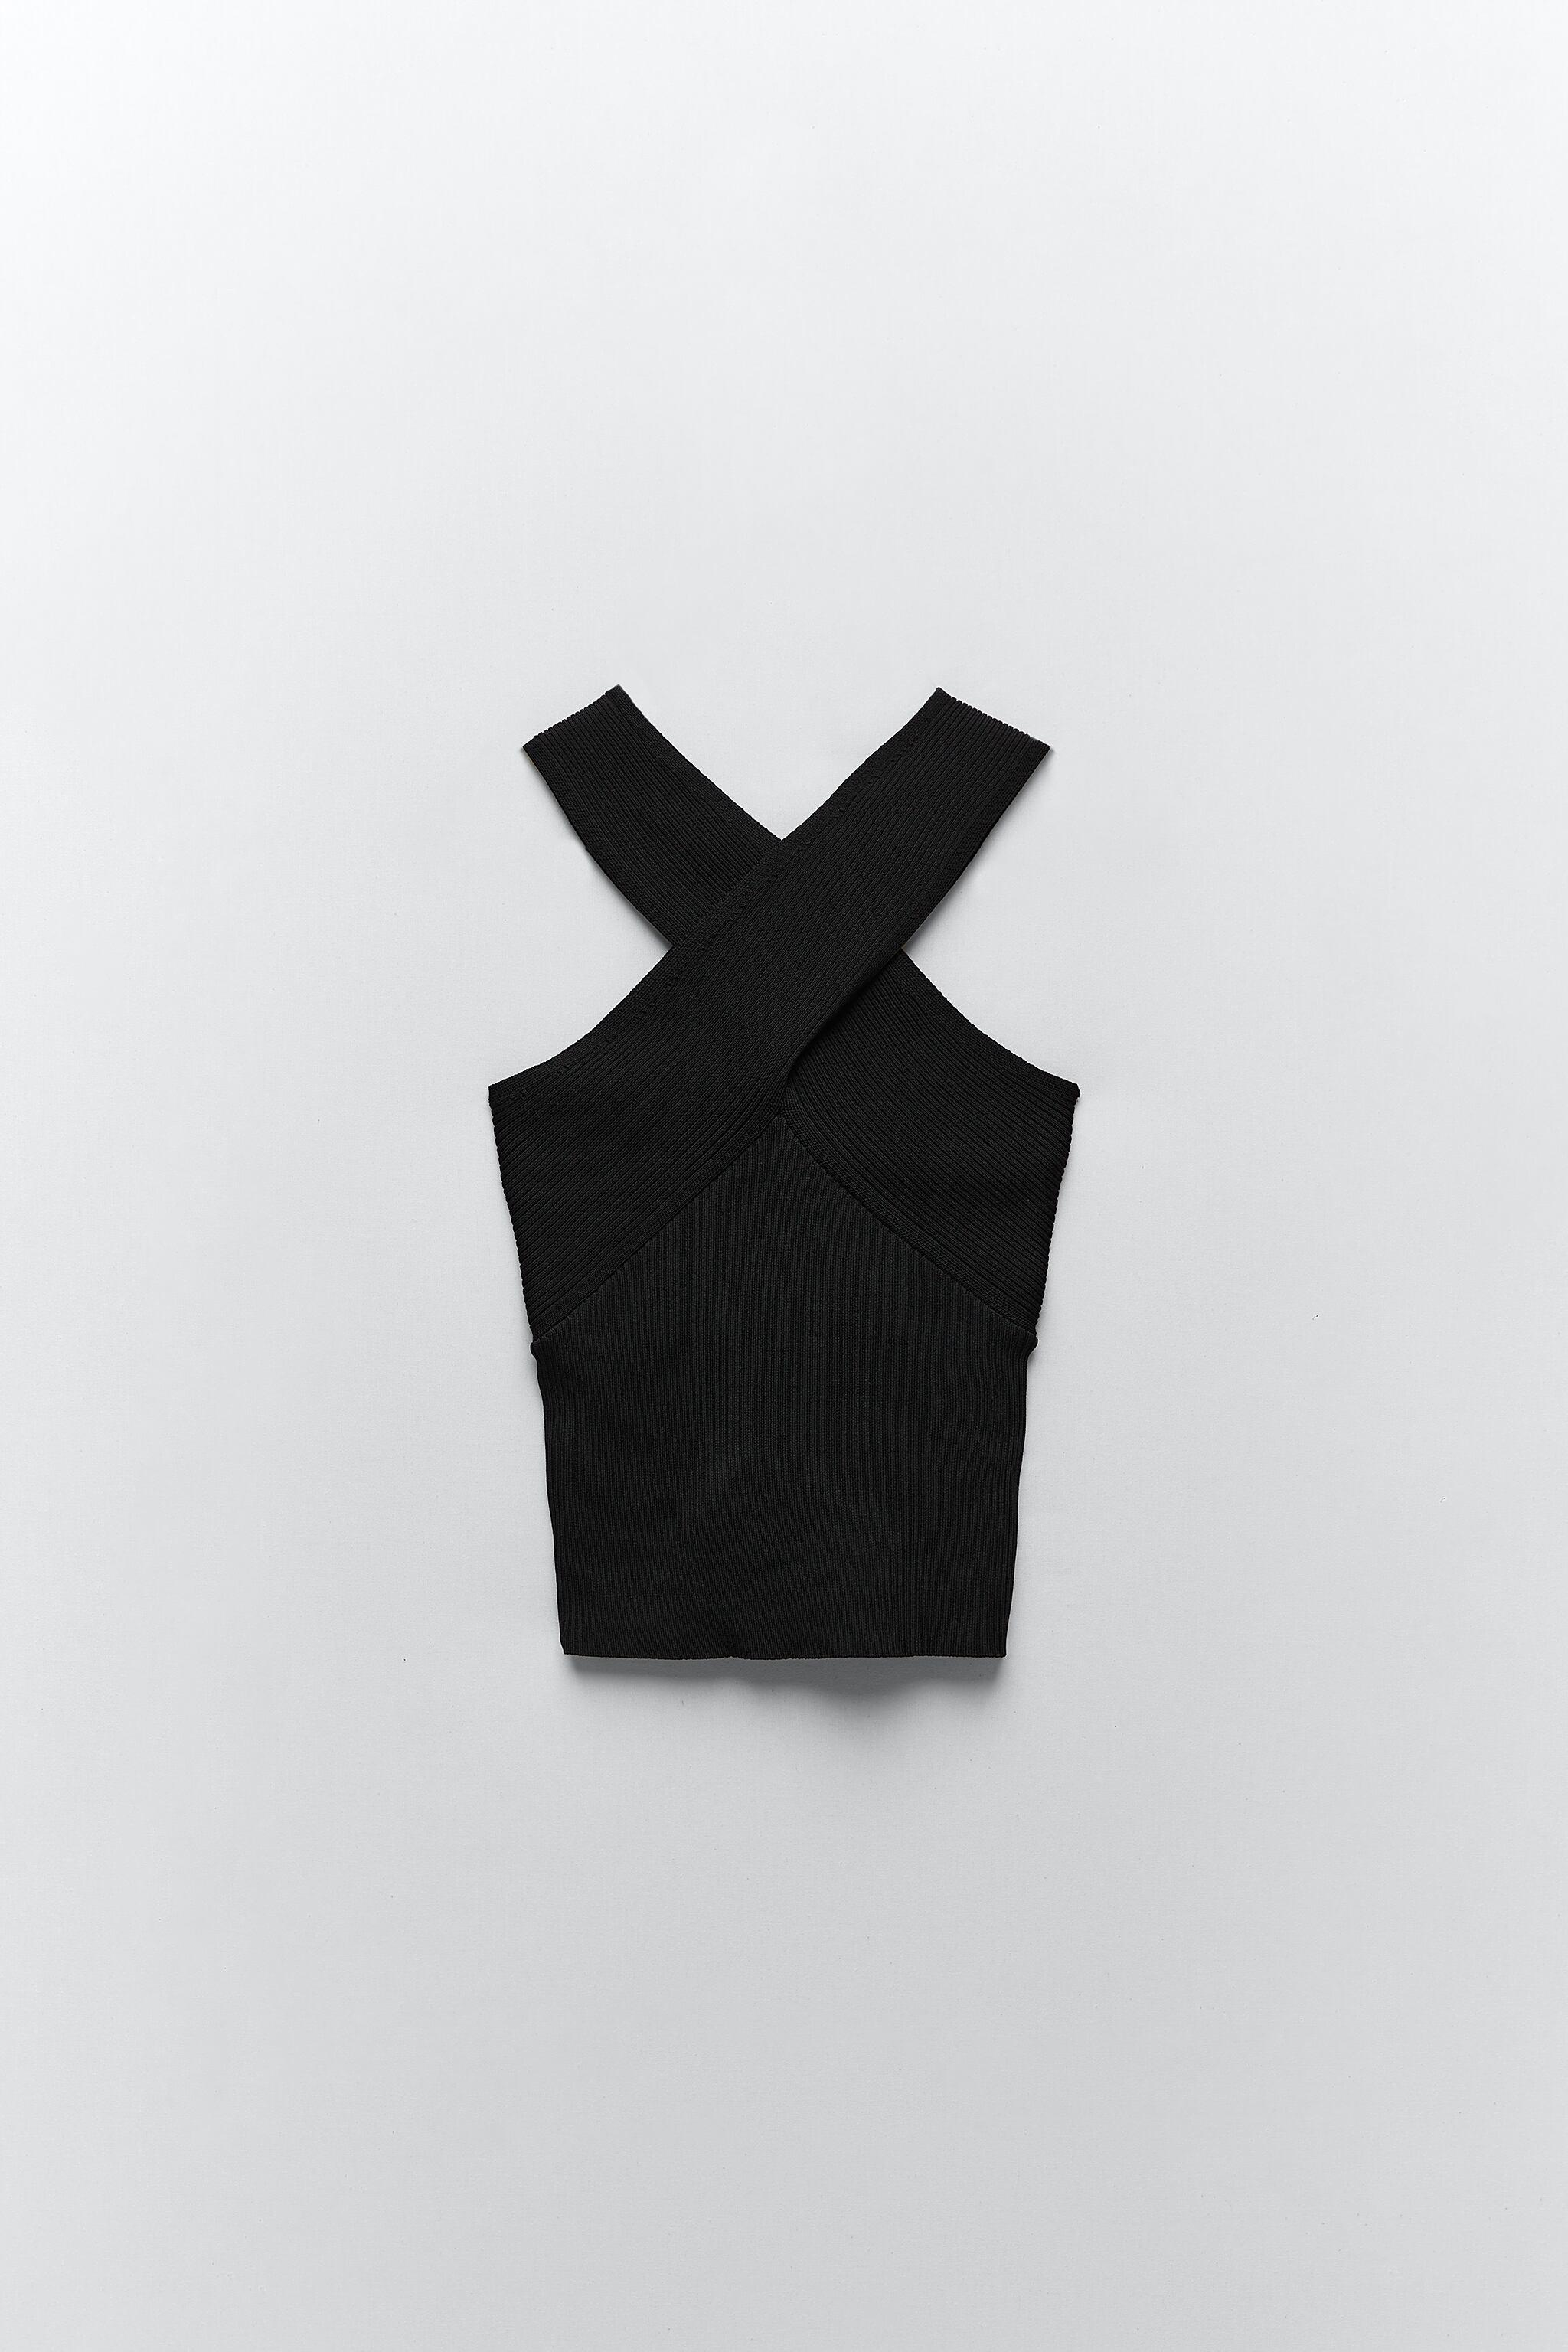 KNIT TOP WITH CROSSED STRAPS 8